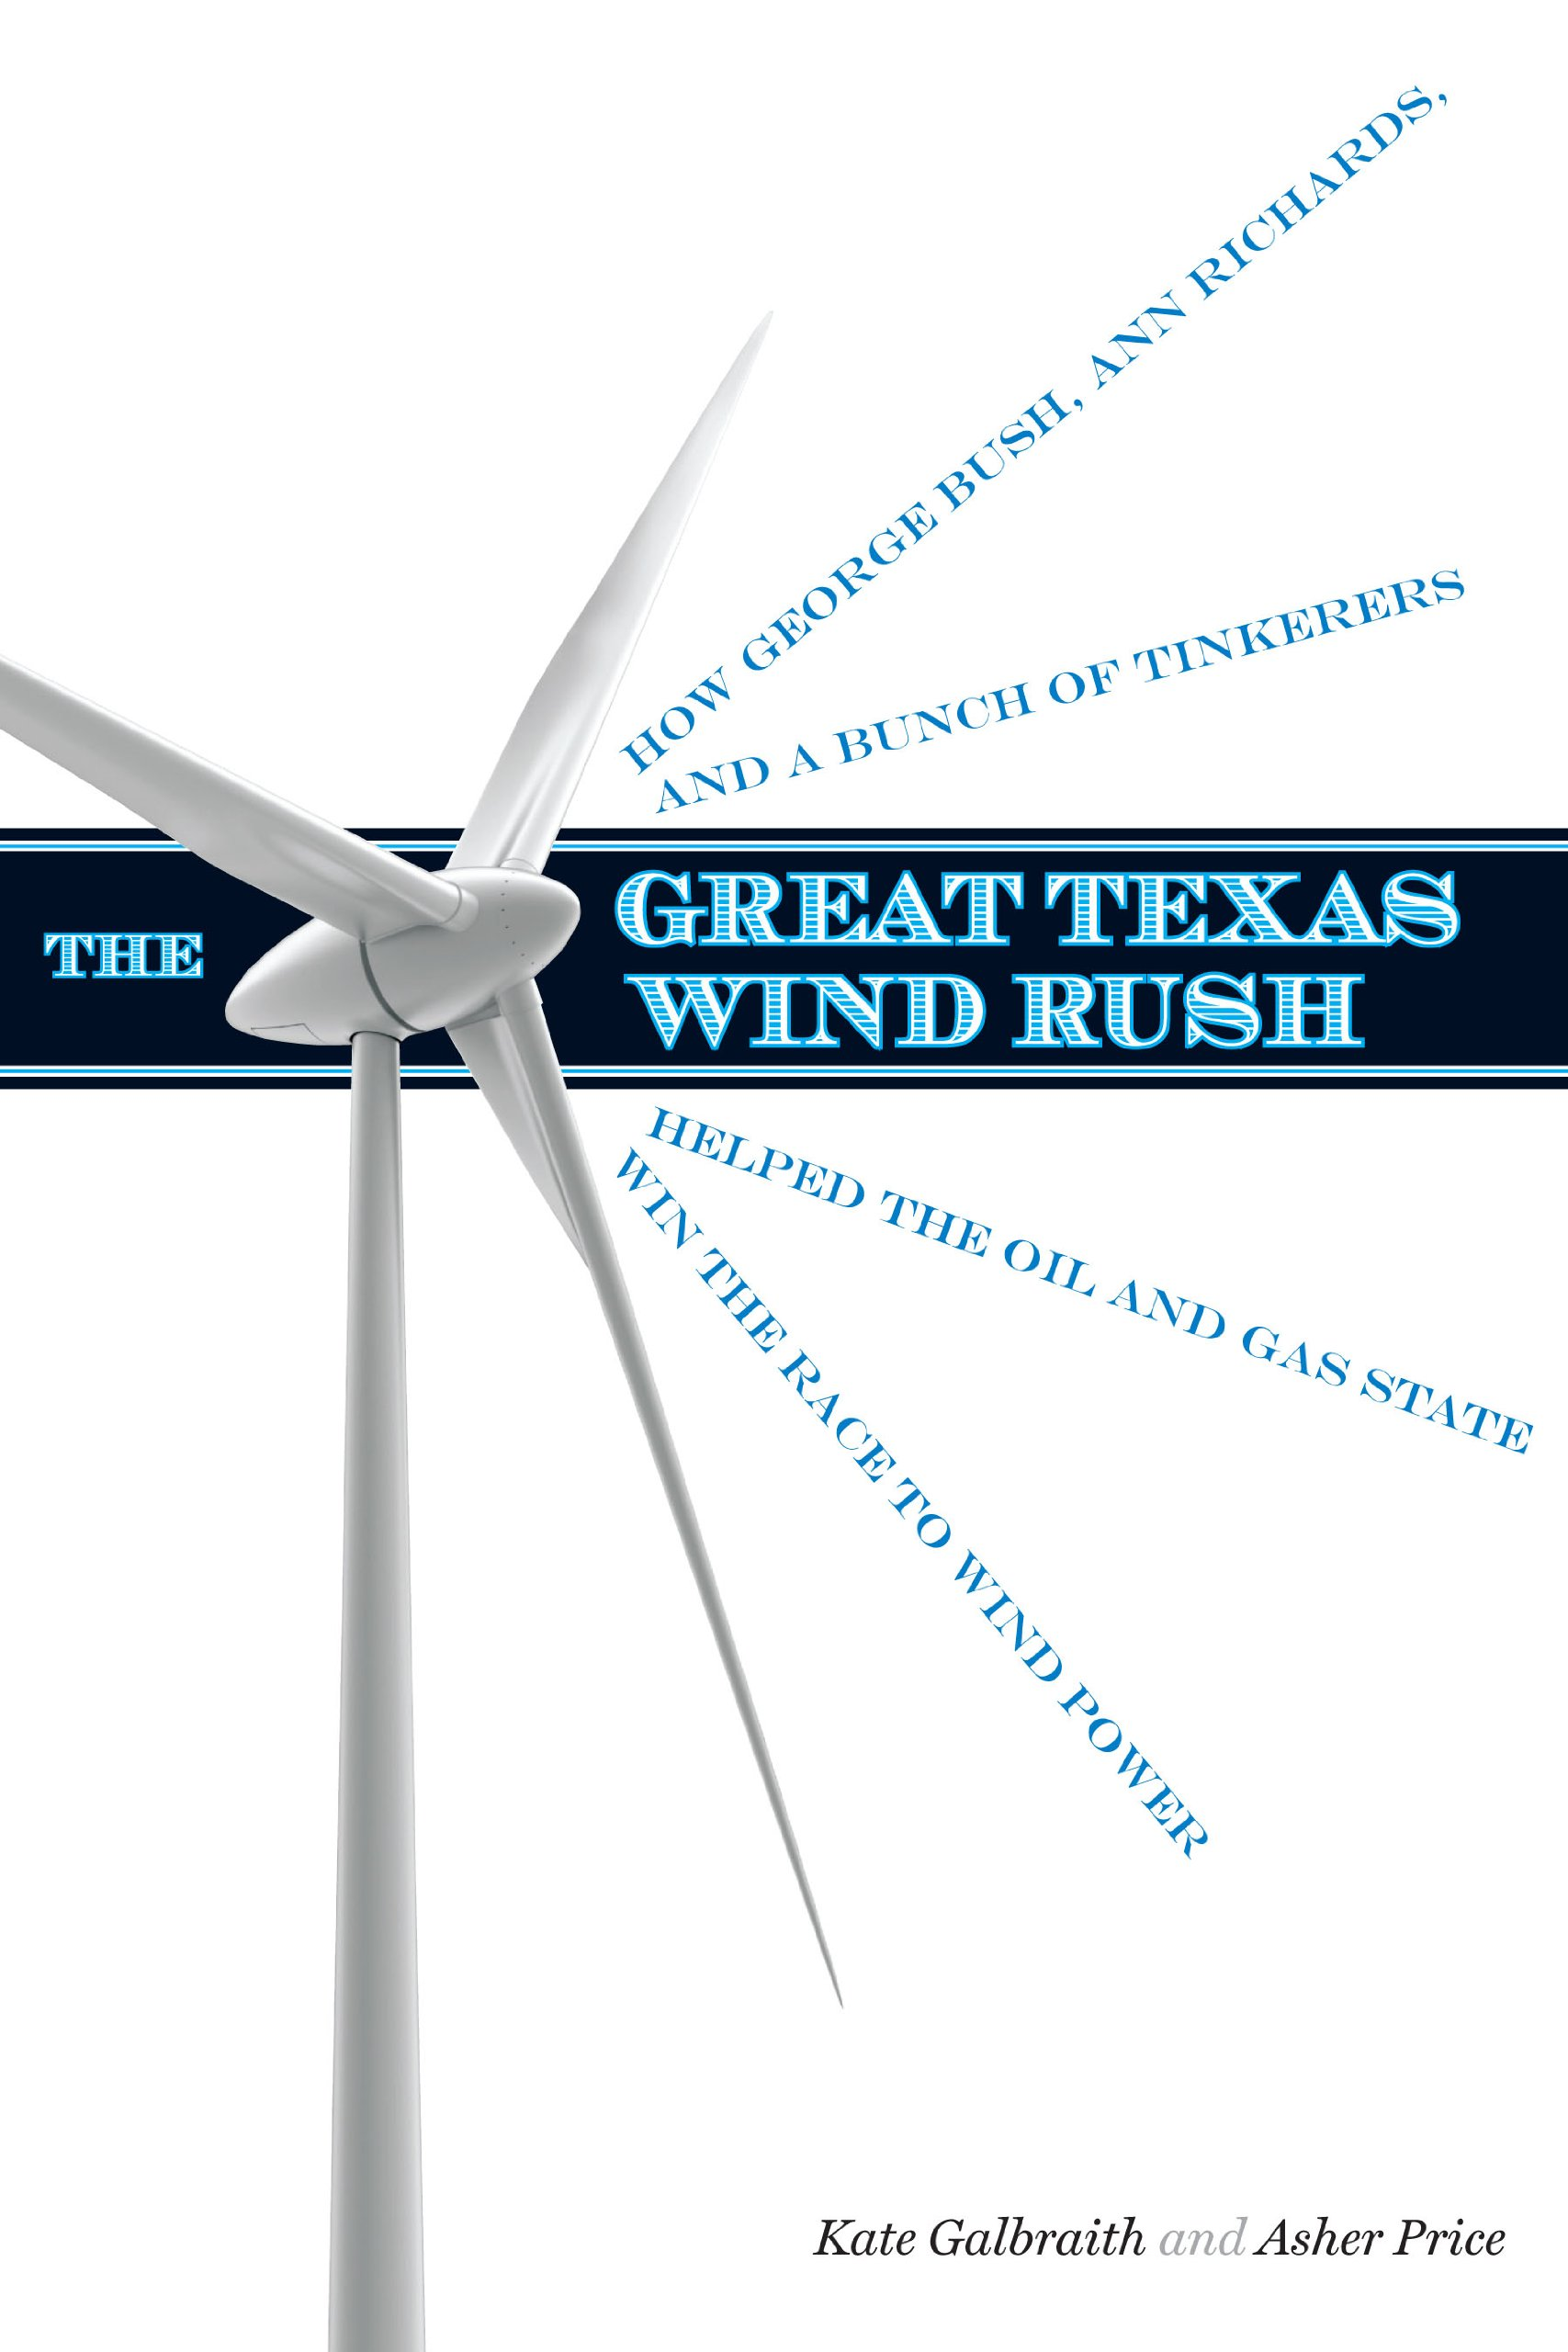 The Great Texas Wind Rush: How George Bush, Ann Richards, and a Bunch of Tinkerers Helped the Oil and Gas State Win the Race to Wind Power (Peter T. Flawn Series in Natural Resources)